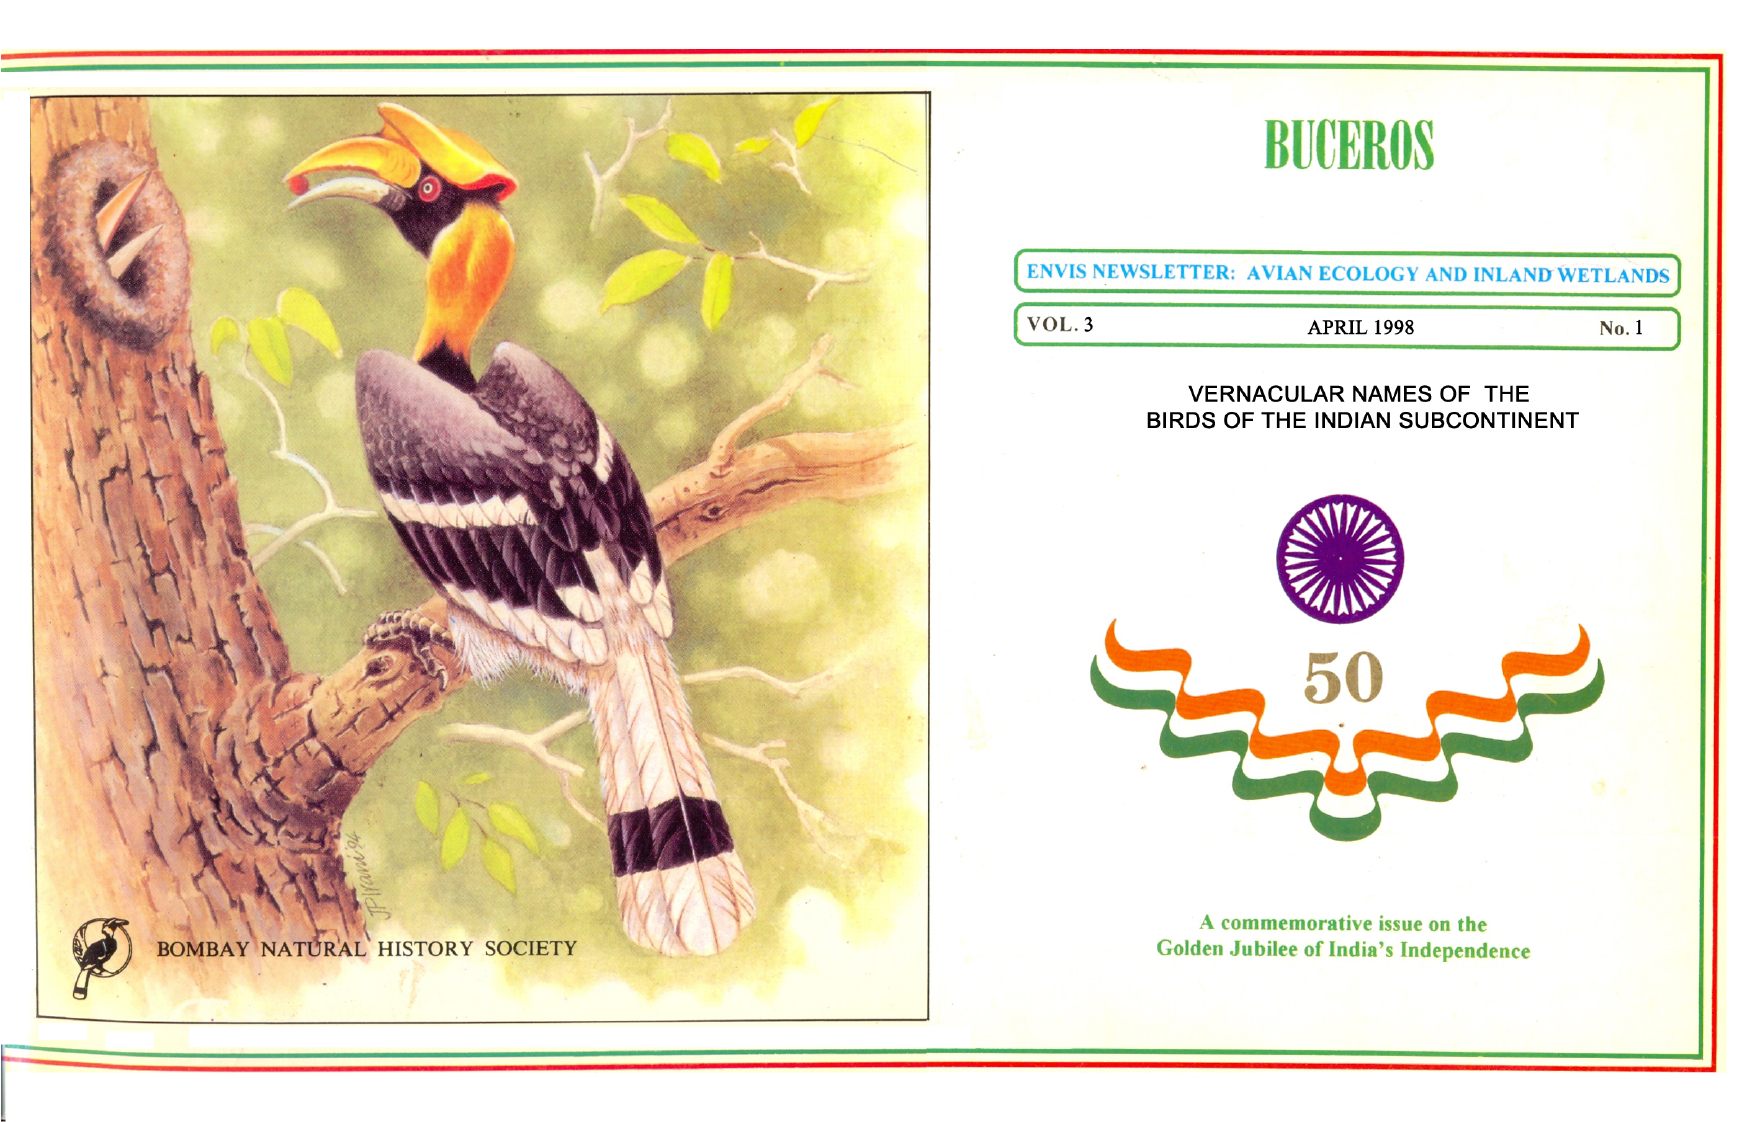 Used For Birds In The Manuscript 3 1 4 Pdfmadhavi Inamdar For Marathi Names Dr S Balachandran And Dr S Alagar Rajan For Tamil Names Dr Ranjit Bird Names Is Intended To